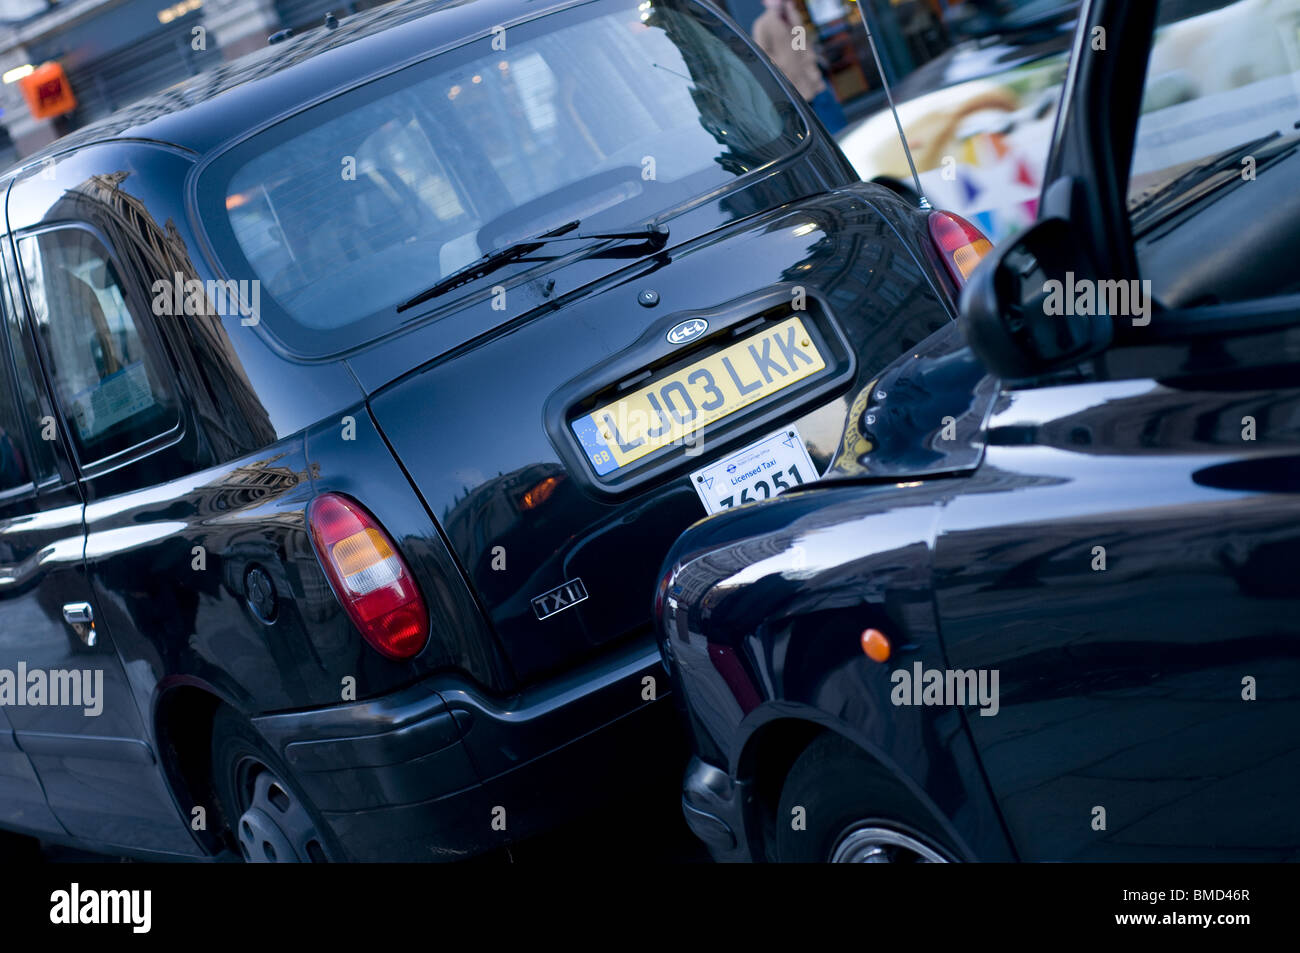 Crop of London Taxi Cabs bumper to bumper - Stock Image